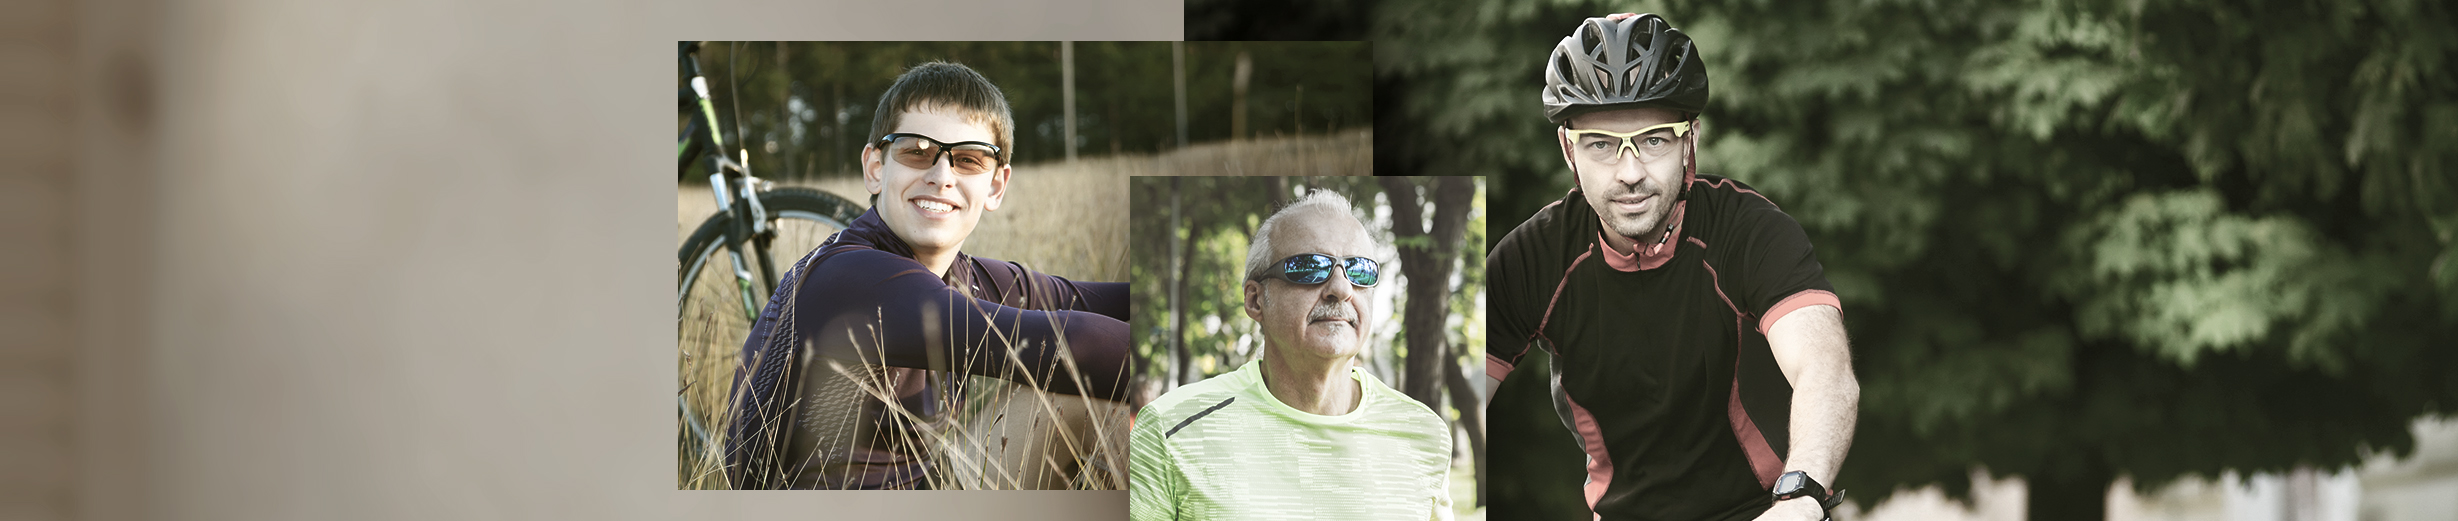 Glassesgallery - Men sportsglasses banner